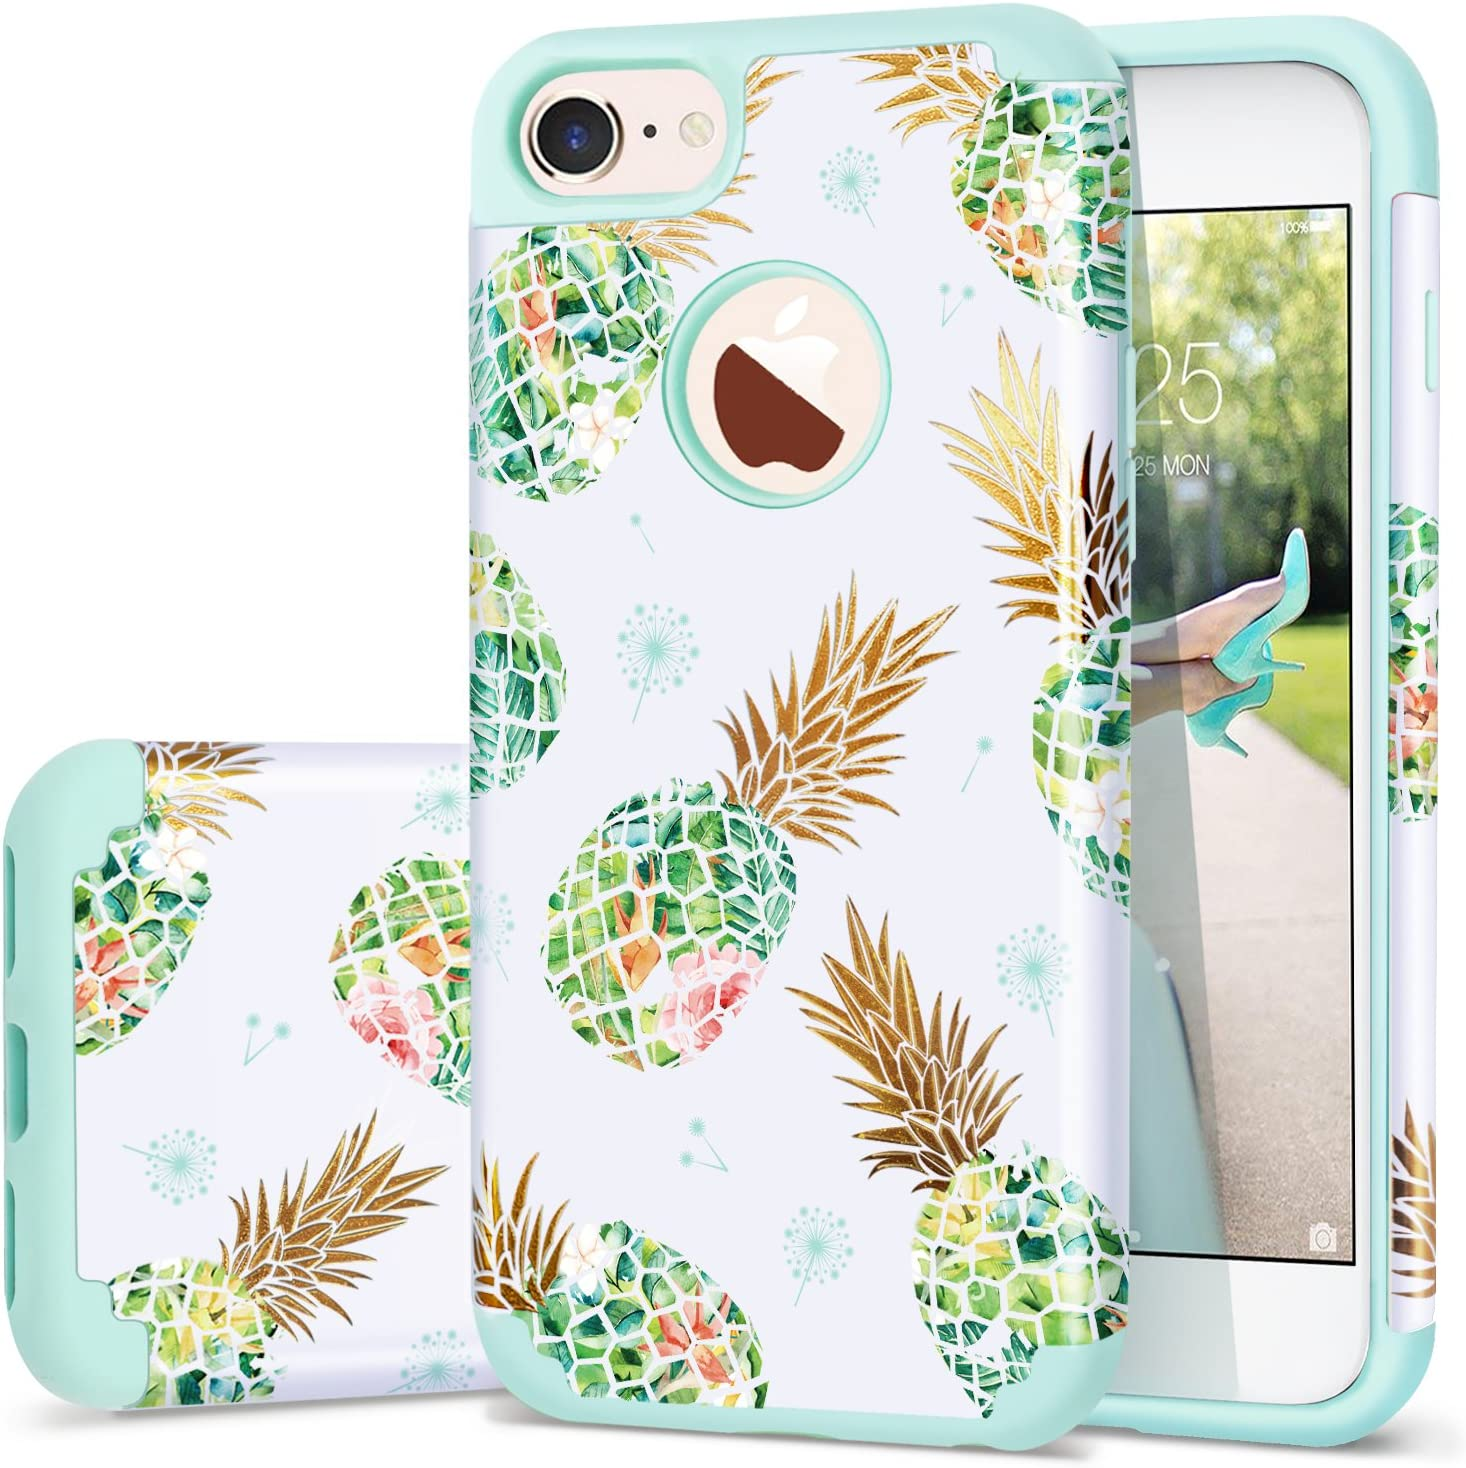 Fingic iPhone 8 Case,Pineapple iPhone 7 Case, Silicone Pineapple Design CASE Anti-Scratch Shock Proof Protective Summer Case 2 in1 Hybrid Skin Cover for iPhone 8/7 4.7 Inch,Green